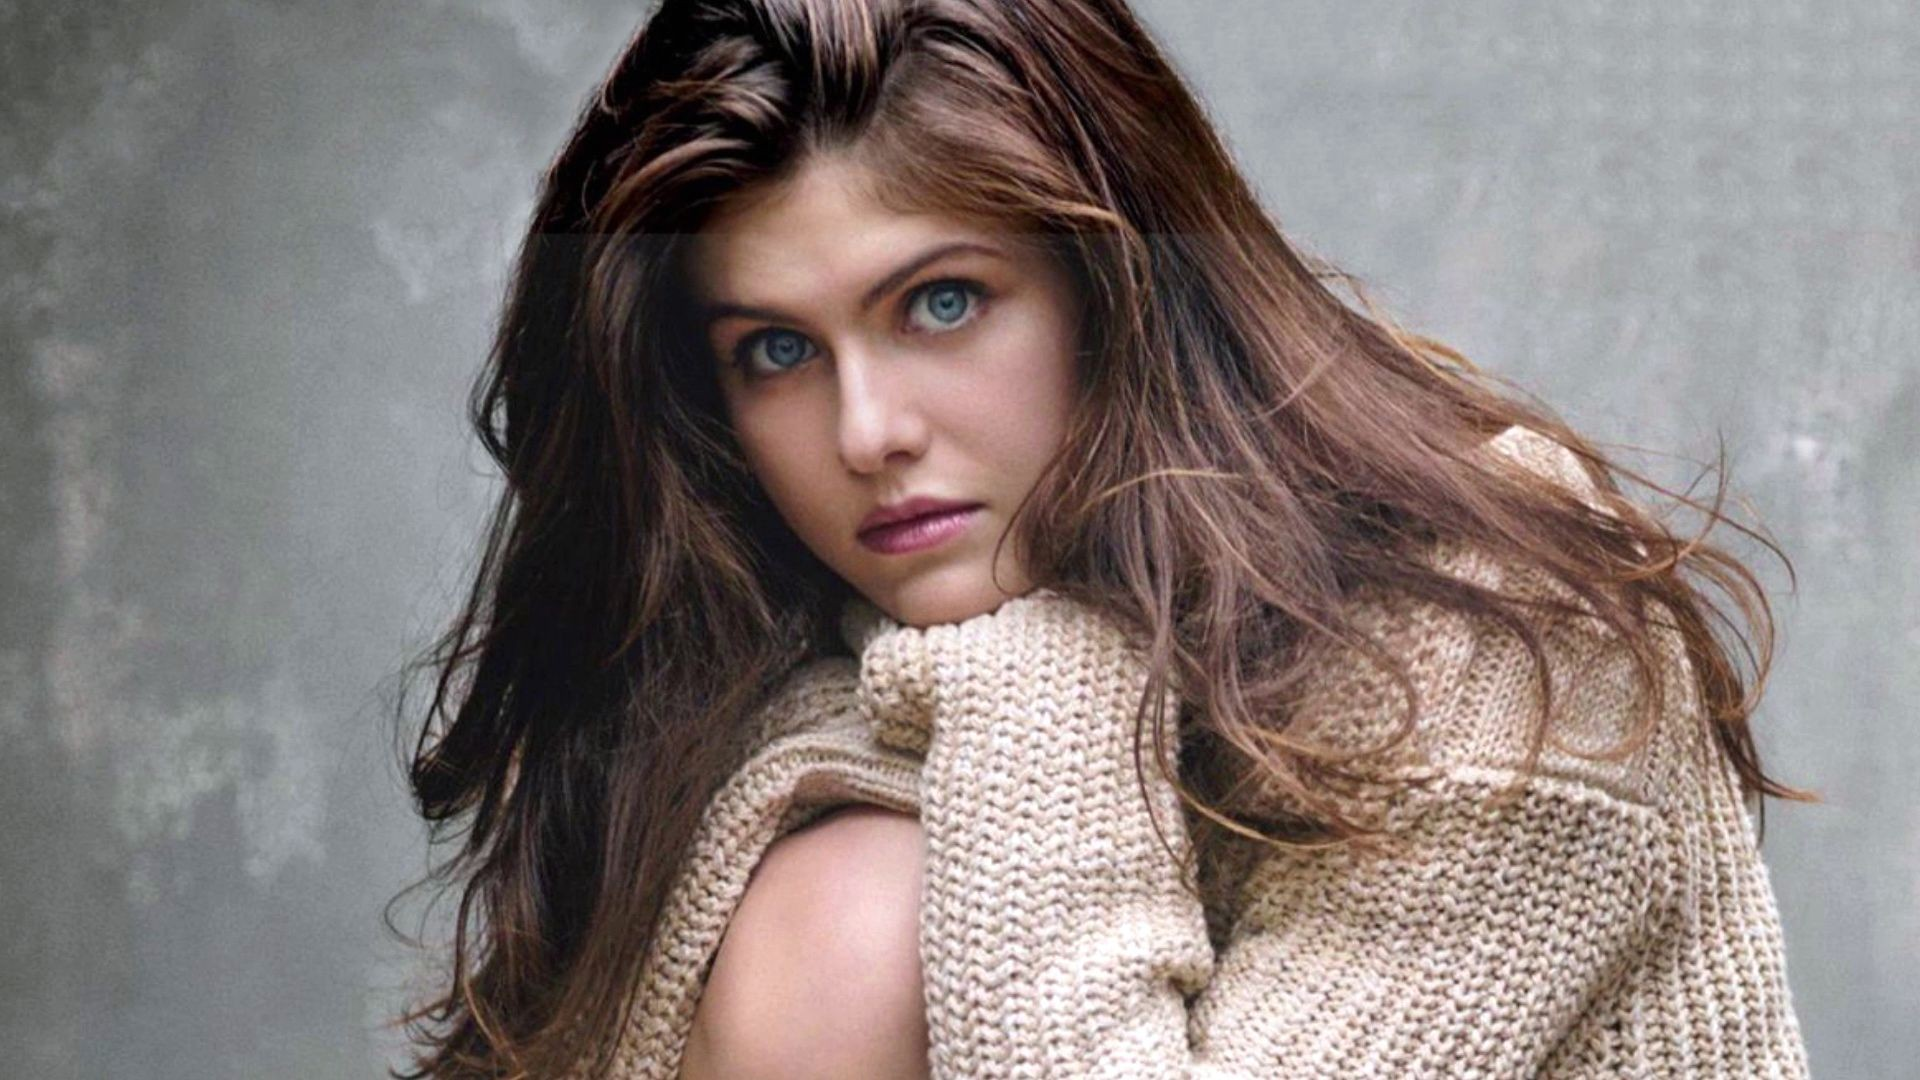 Free Download Girl Wallpaper For 360x640 Alexandra Daddario Wallpaper 183 ① Download Free Amazing Hd